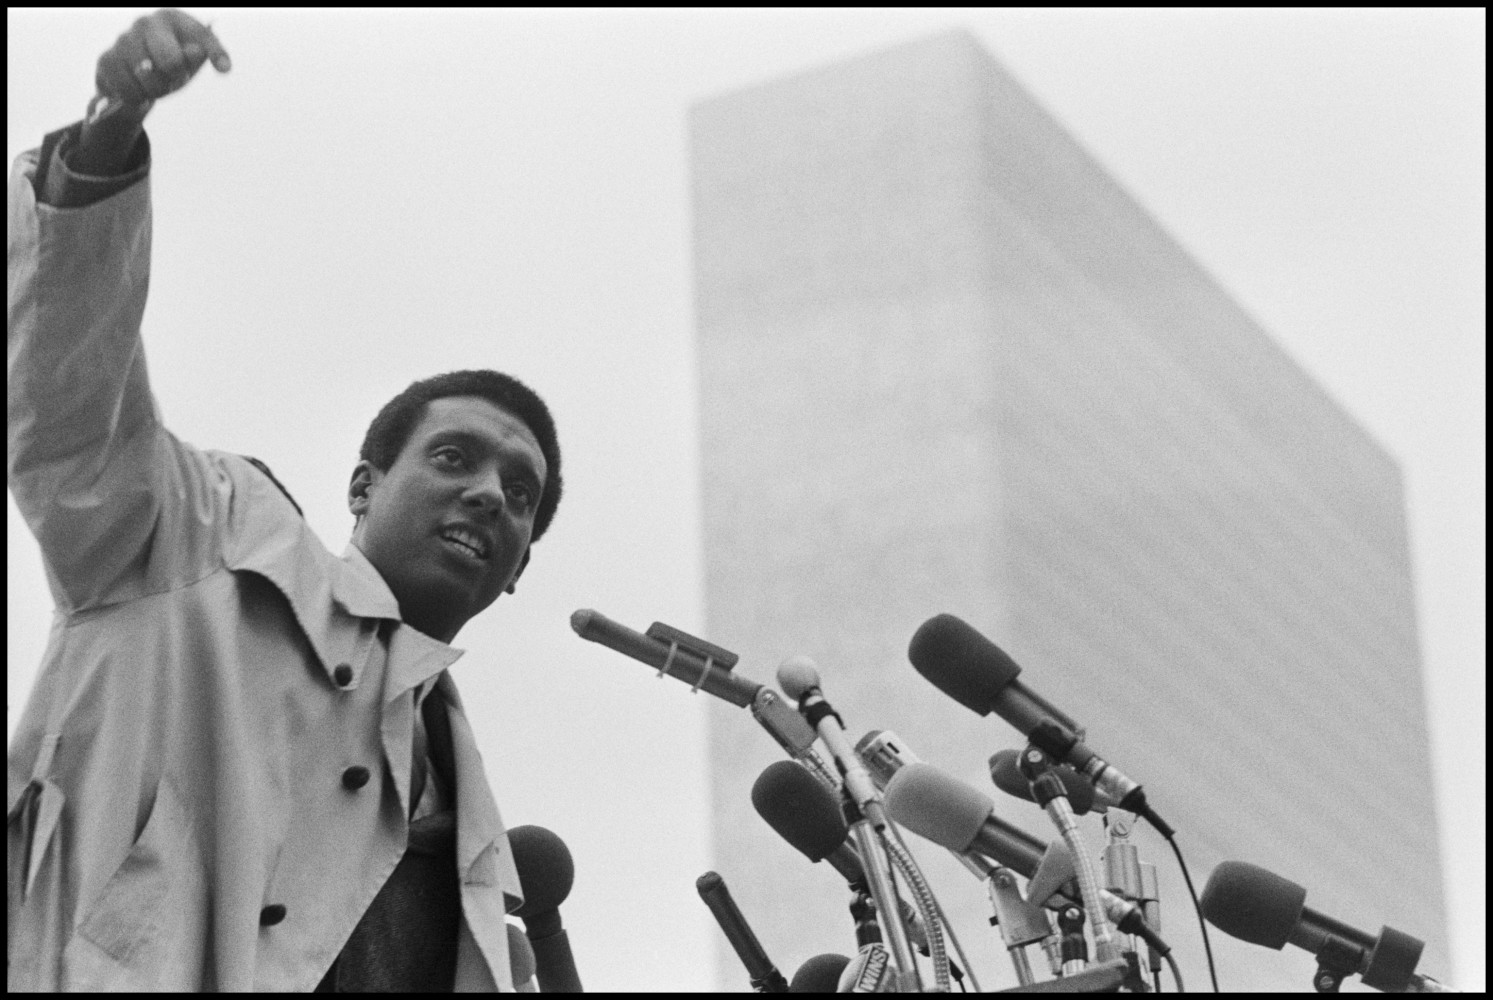 In Pictures: Tracing the Activism of Stokely Carmichael